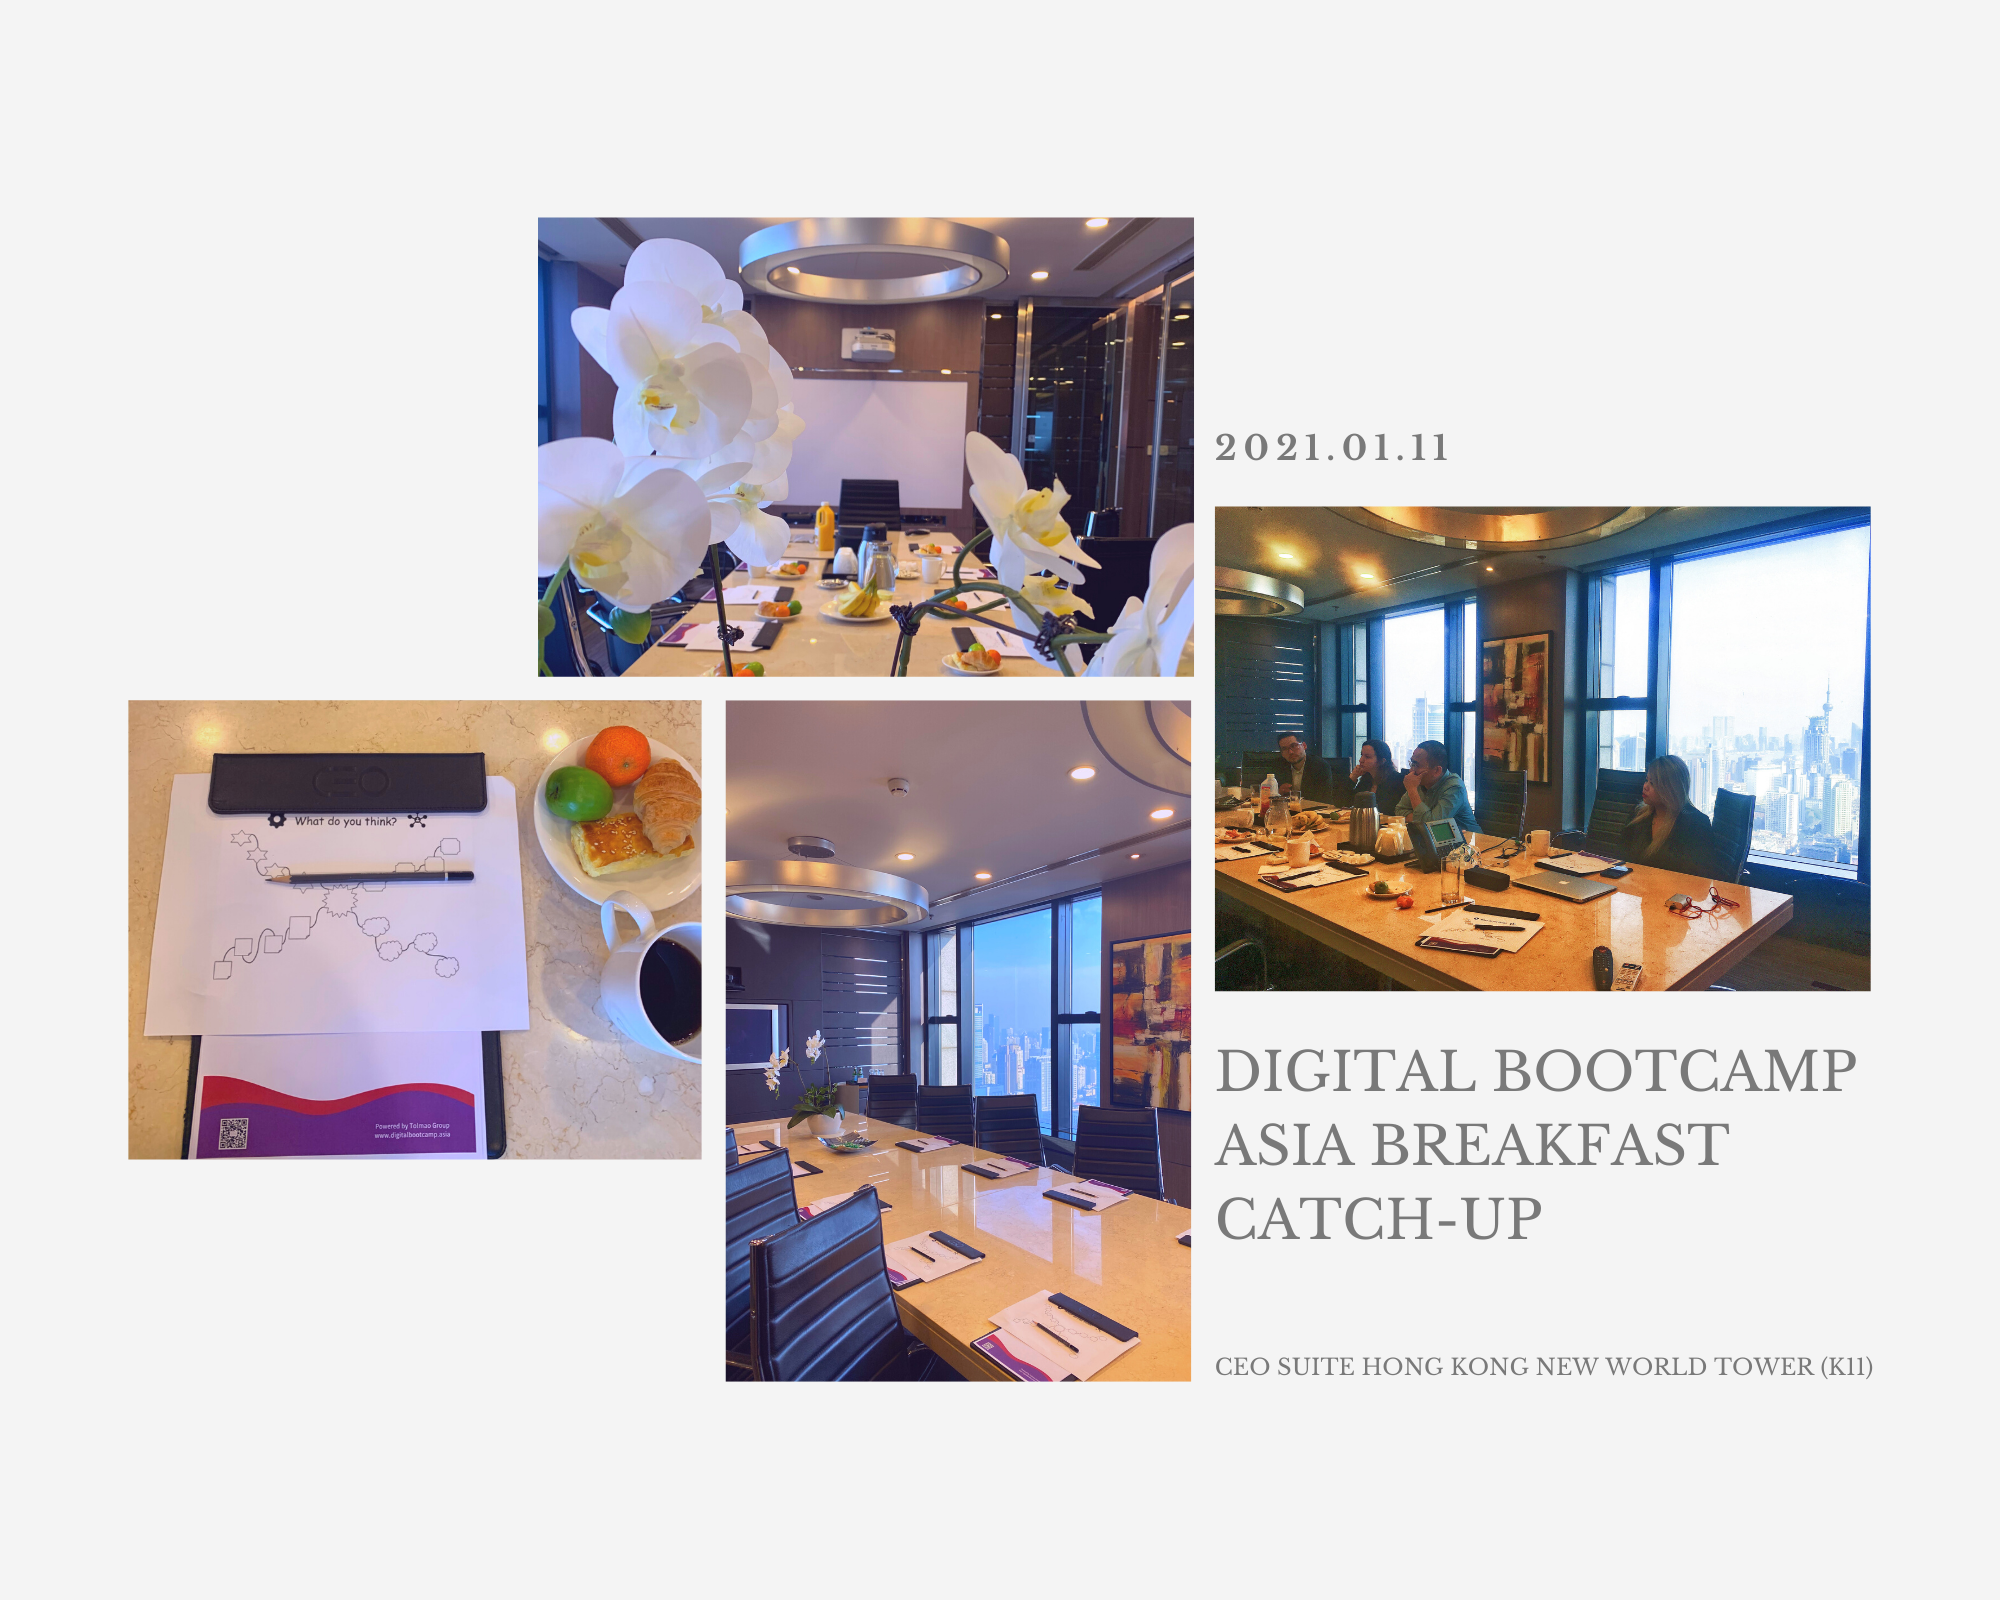 Breakfast Catch-up Recap: The Early Bird Catches the Worm